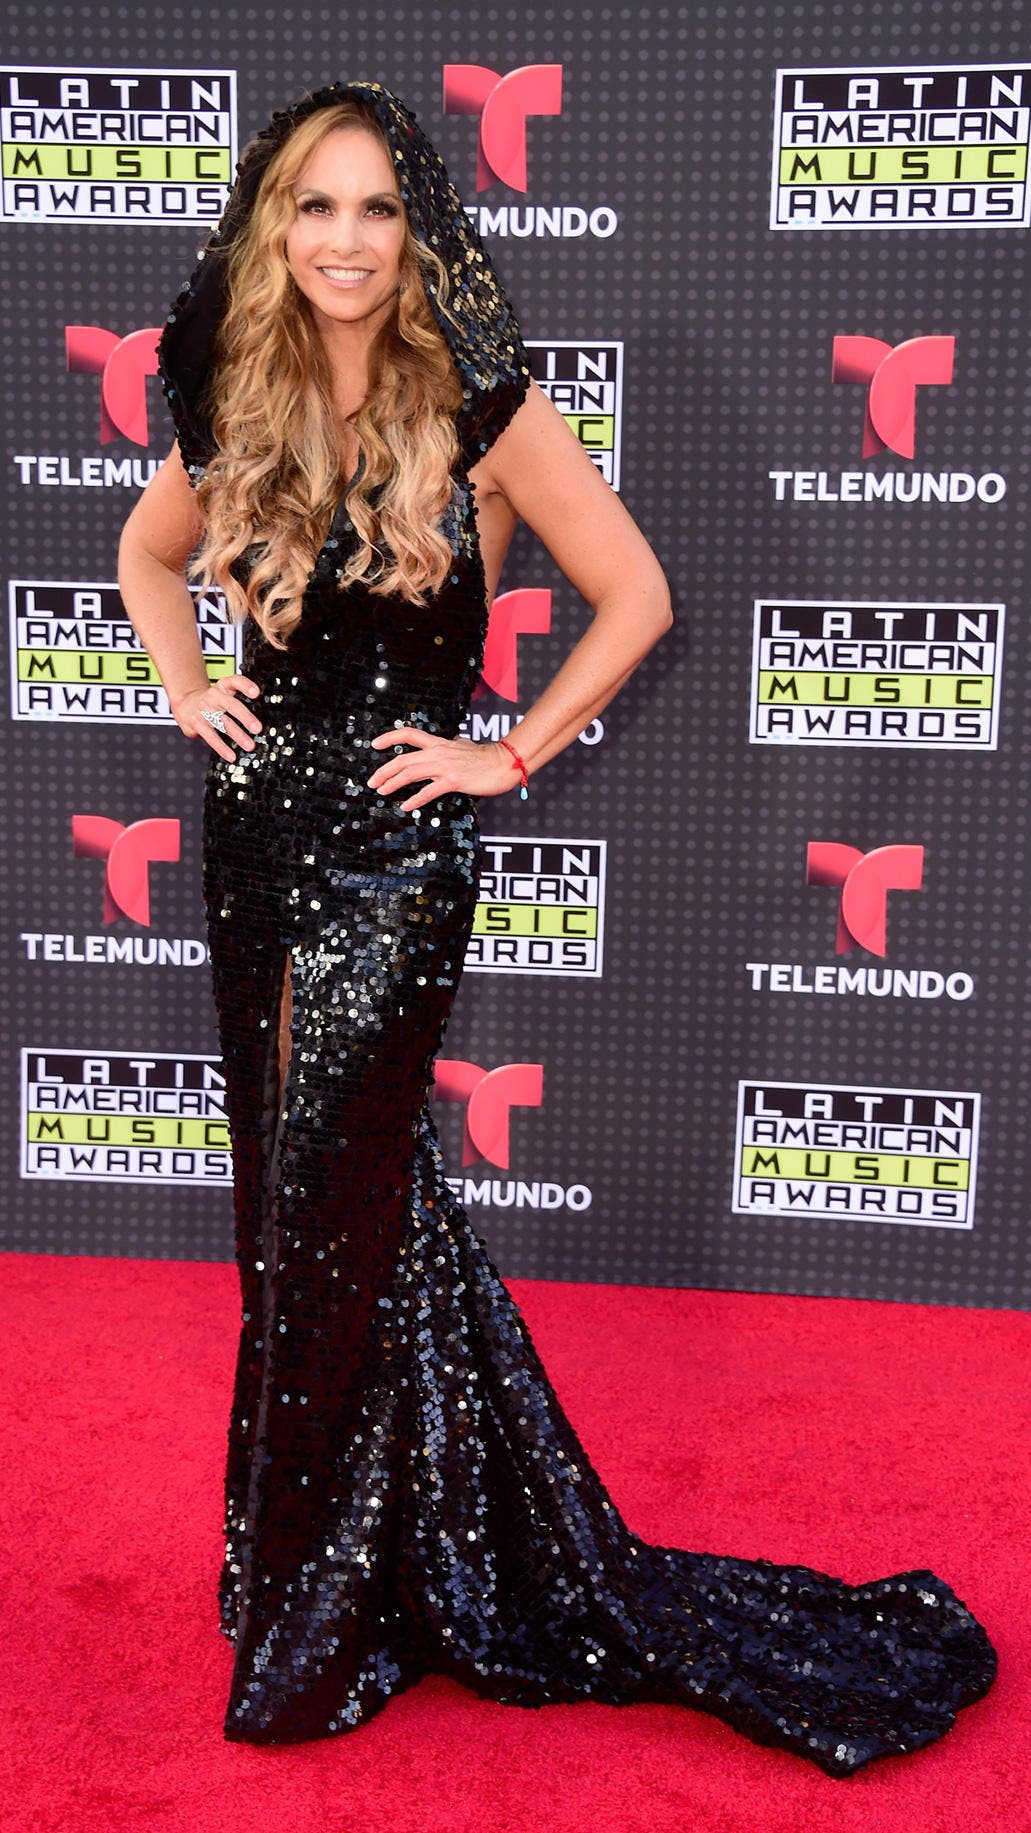 HOLLYWOOD, CA - OCTOBER 08: Lucero Hogaza Leon aka Lucero attends Telemundo's Latin American Music Awards at the Dolby Theatre on October 8, 2015 in Hollywood, California. (Photo by Frazer Harrison/Getty Images)